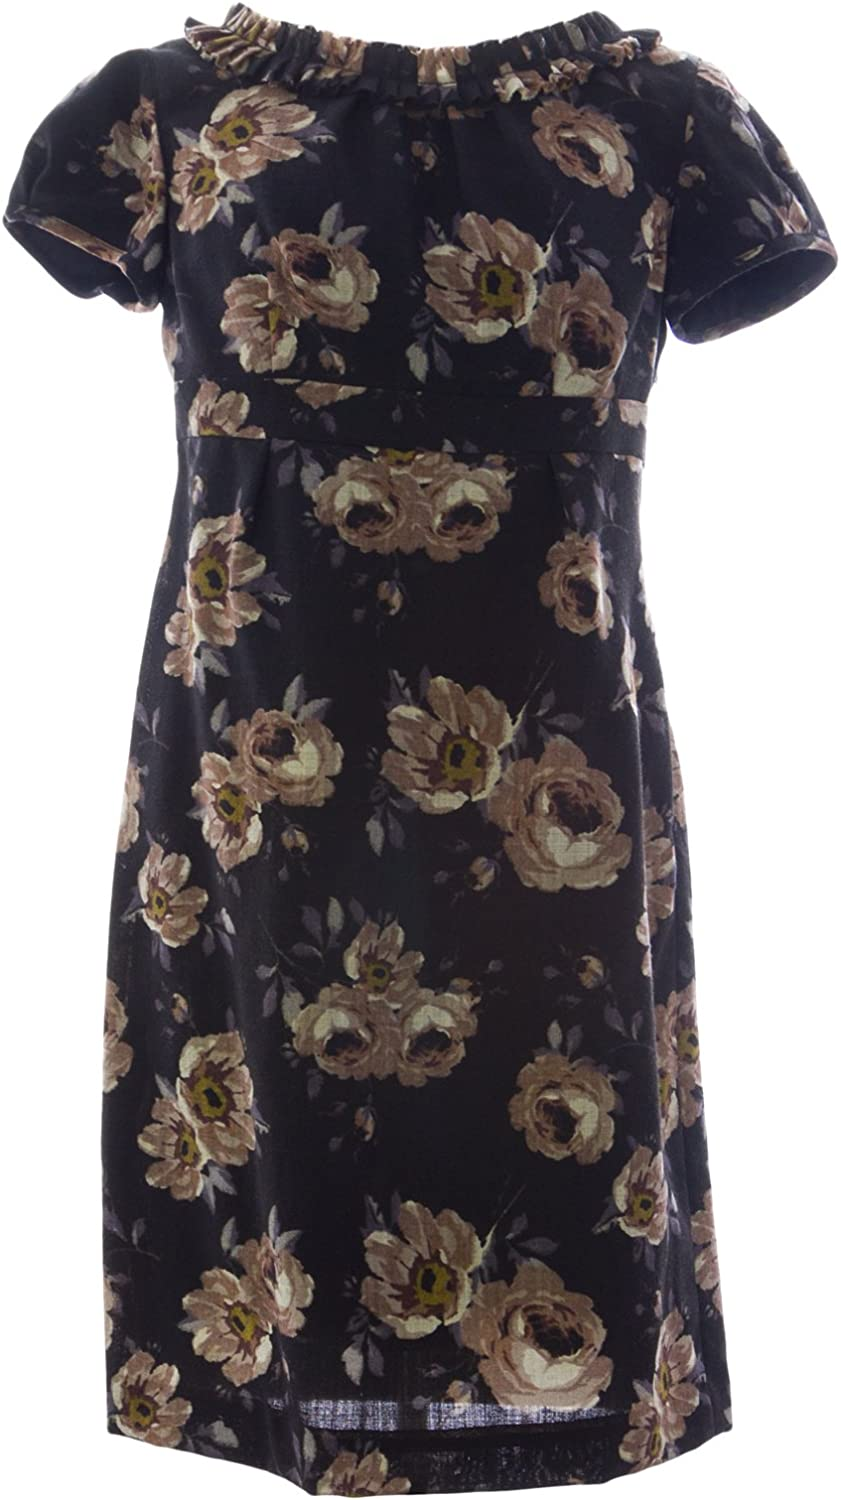 BODEN Women's Floral Print Wool Shift Dress US Sz 6P Black